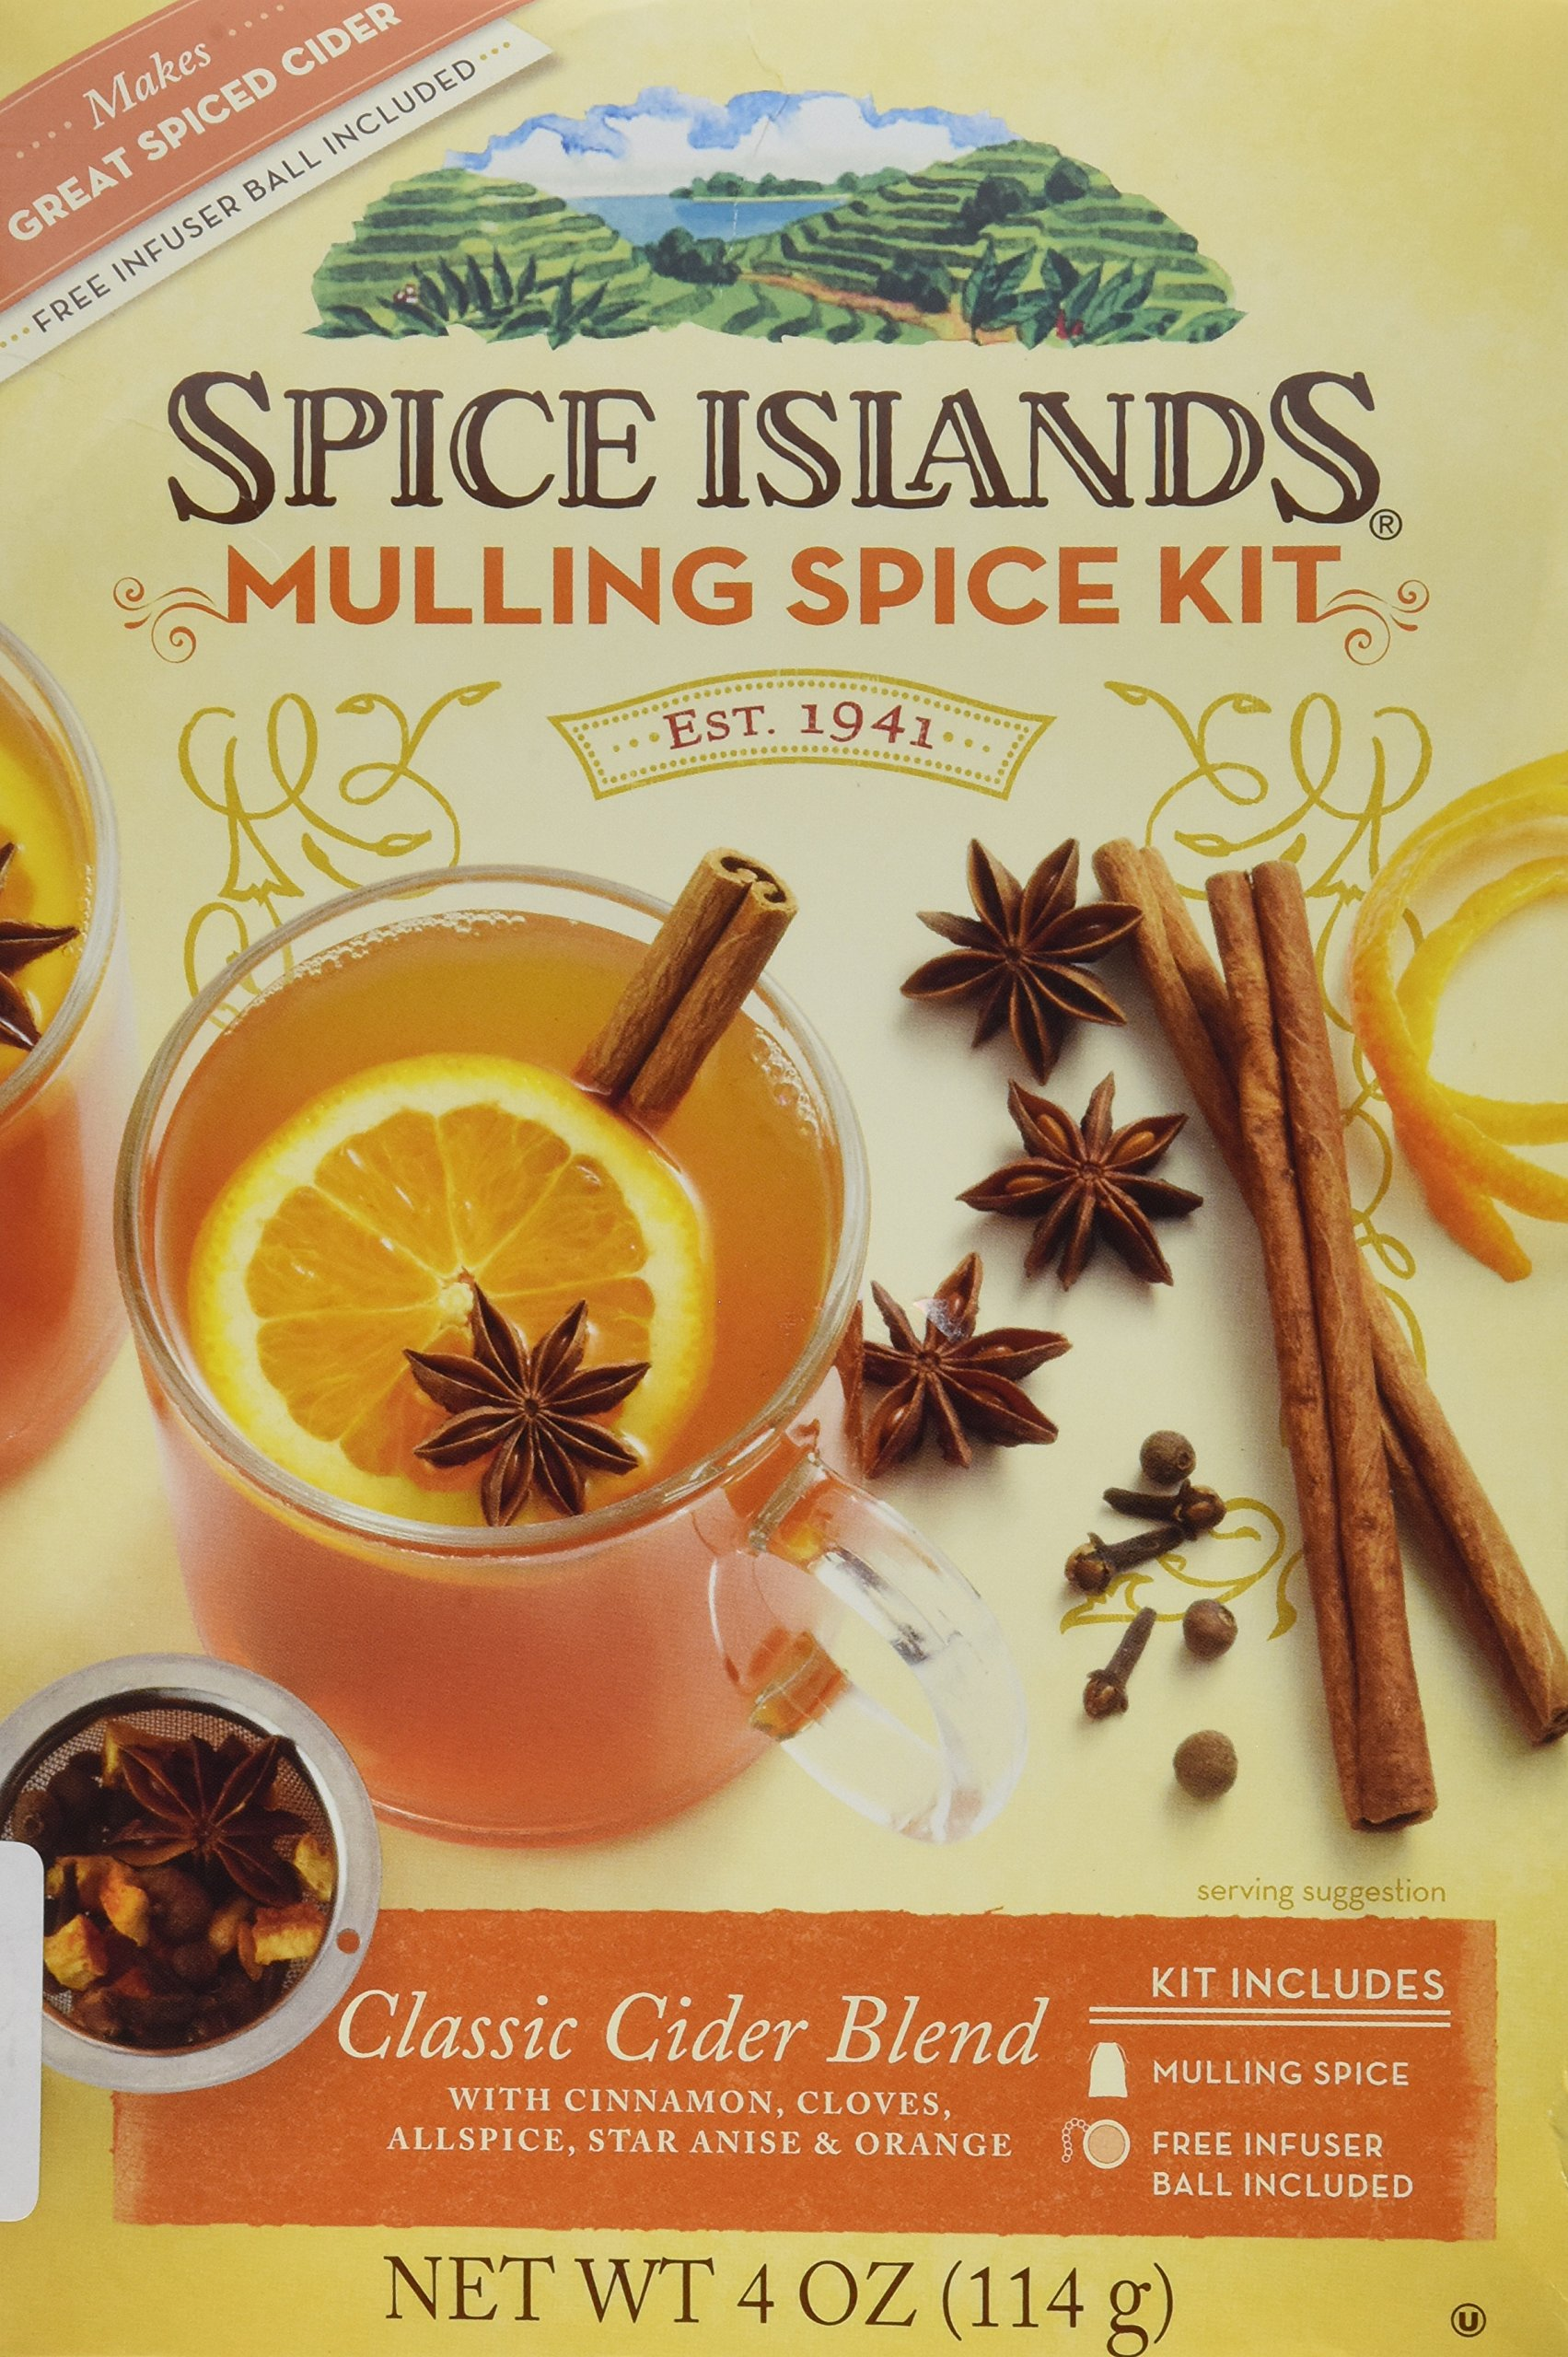 Spice Islands Classic Cider Blend (Mulling Spice Kit) with Infuser Ball-(Pack of 2)